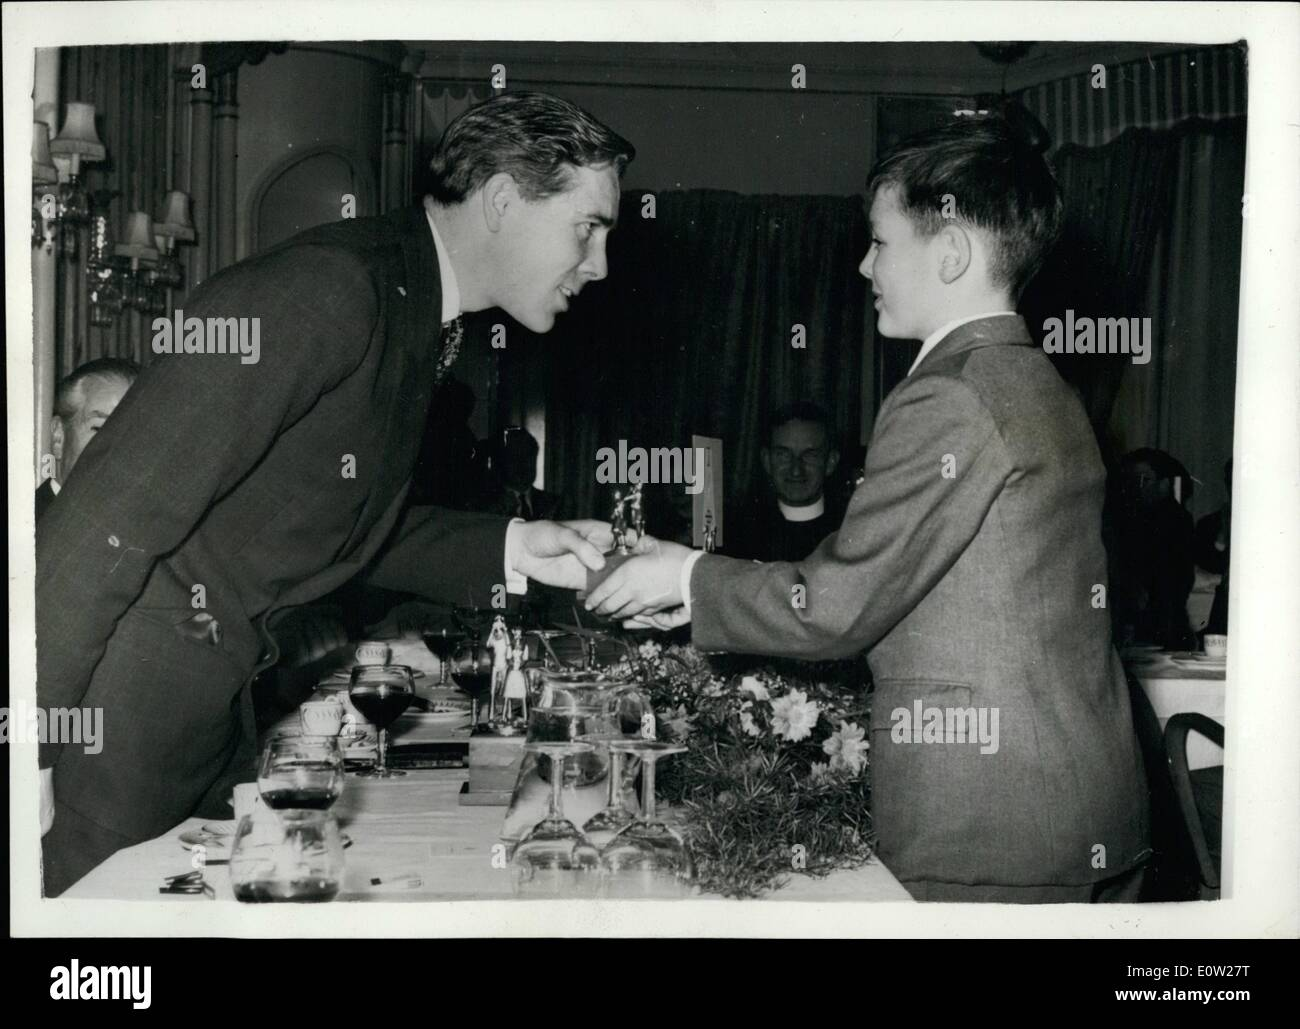 Dec. 12, 1960 - Antony Armstrong Jones Presents Prizes. First Engagement Without Princess Margaret. Anthony Armstrong Jones, today carried out his first solo engagement with out Princess Margaret, when he went to attend a luncheon at the Dorchester Hotel, at which he presented the prize in the 1960 Schools' National Photographic Competition. OPS: Antony Armstrong Jones presents the Junior Trophy in the competition to 11 years old David Martin, of Abermad School, Aberystwyth, Cardiganshire. - Stock Image